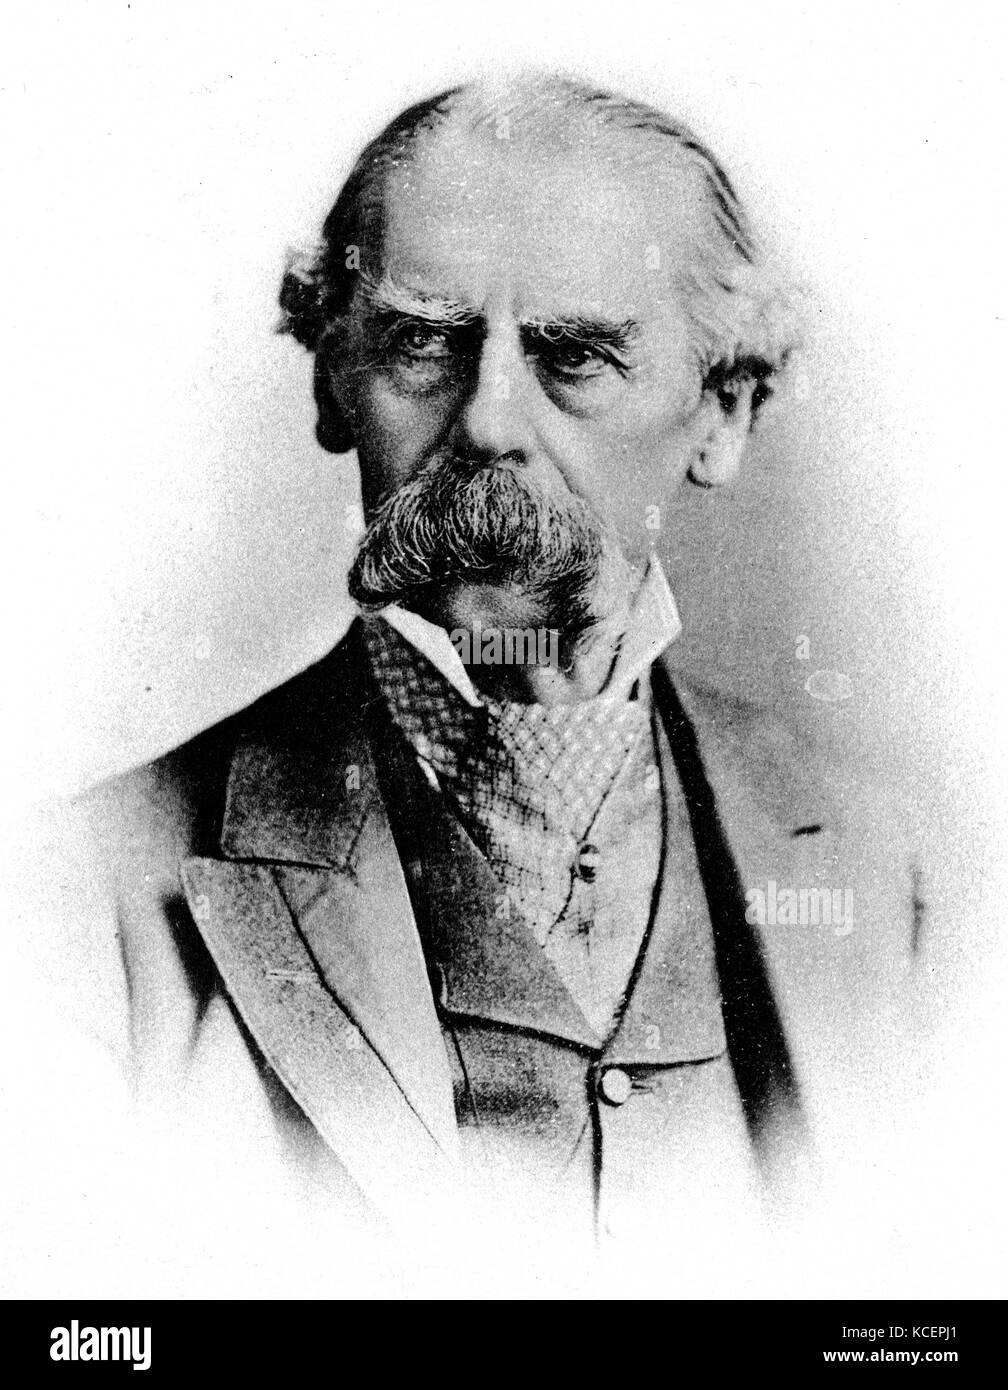 Photograph of Sir Henry Thompson, 1st Baronet (1820-1904) a British surgeon and polymath. Dated 19th Century - Stock Image